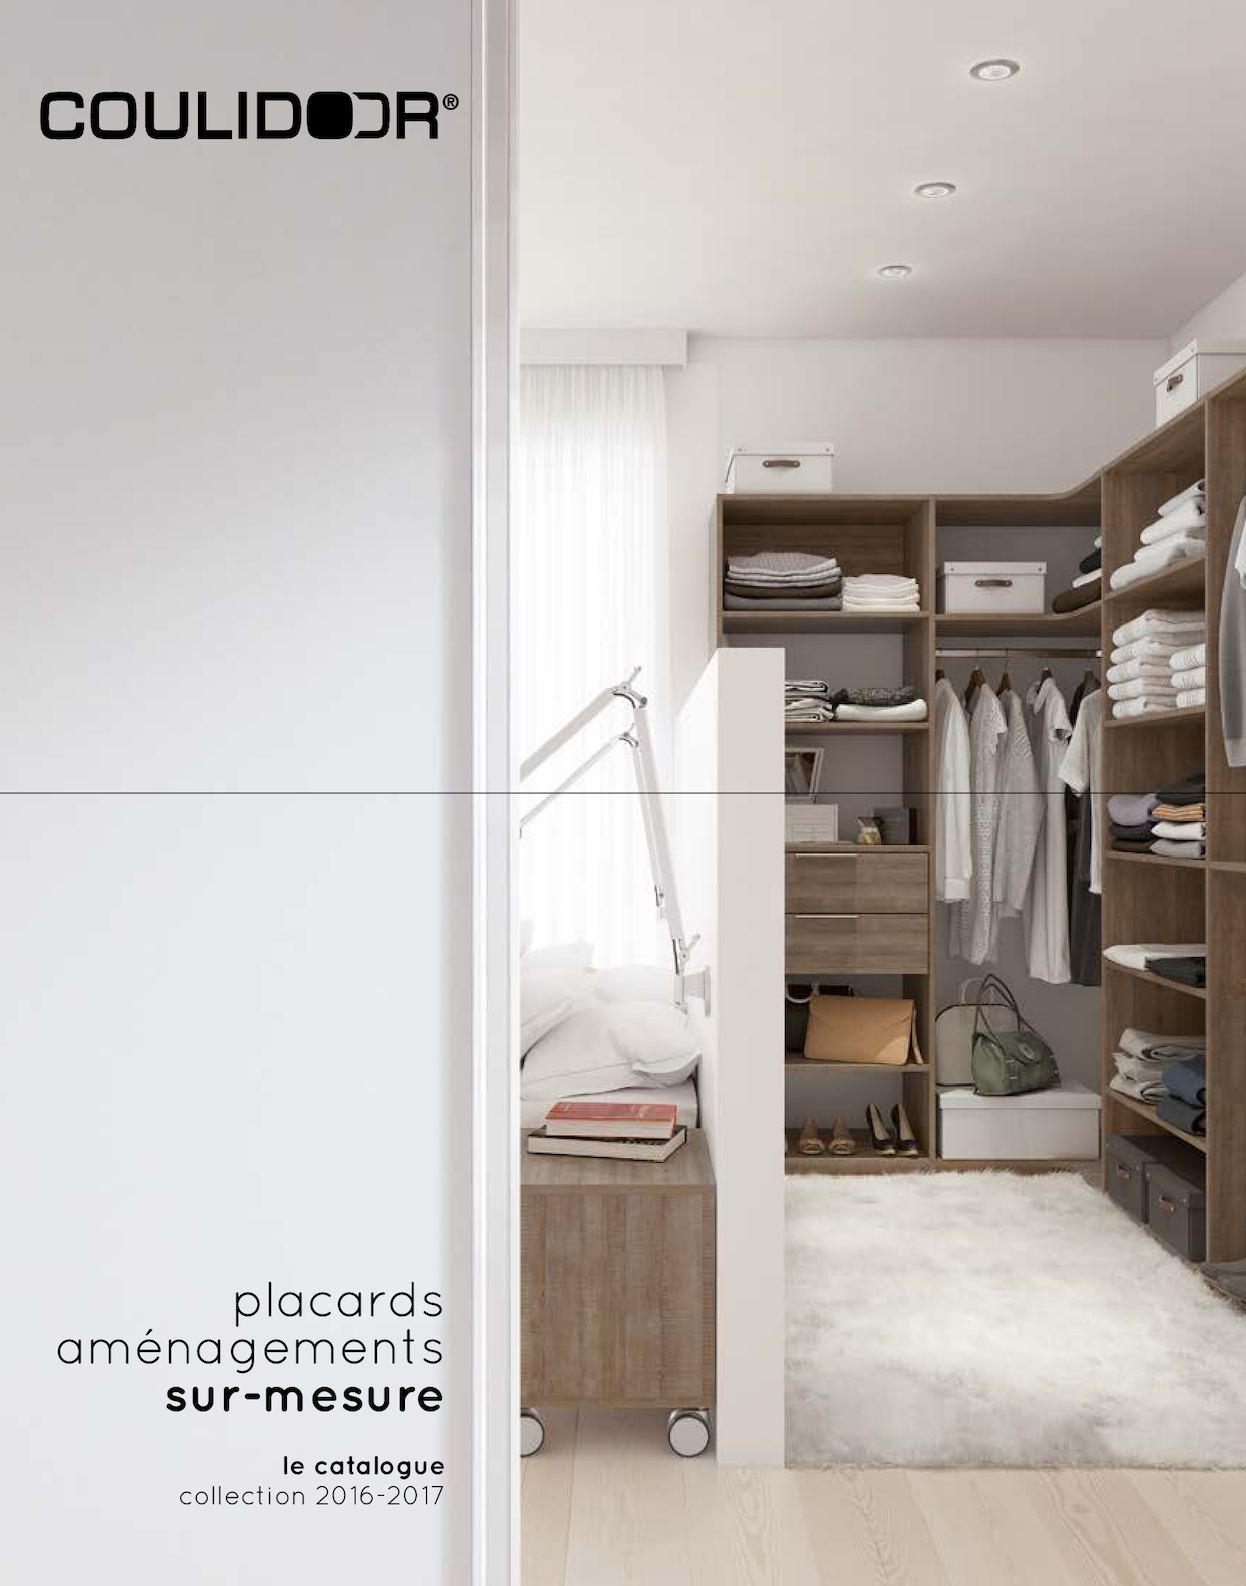 Porte De Placard Coulidoor Calaméo Catalogue Coulidoor 2016 Bd